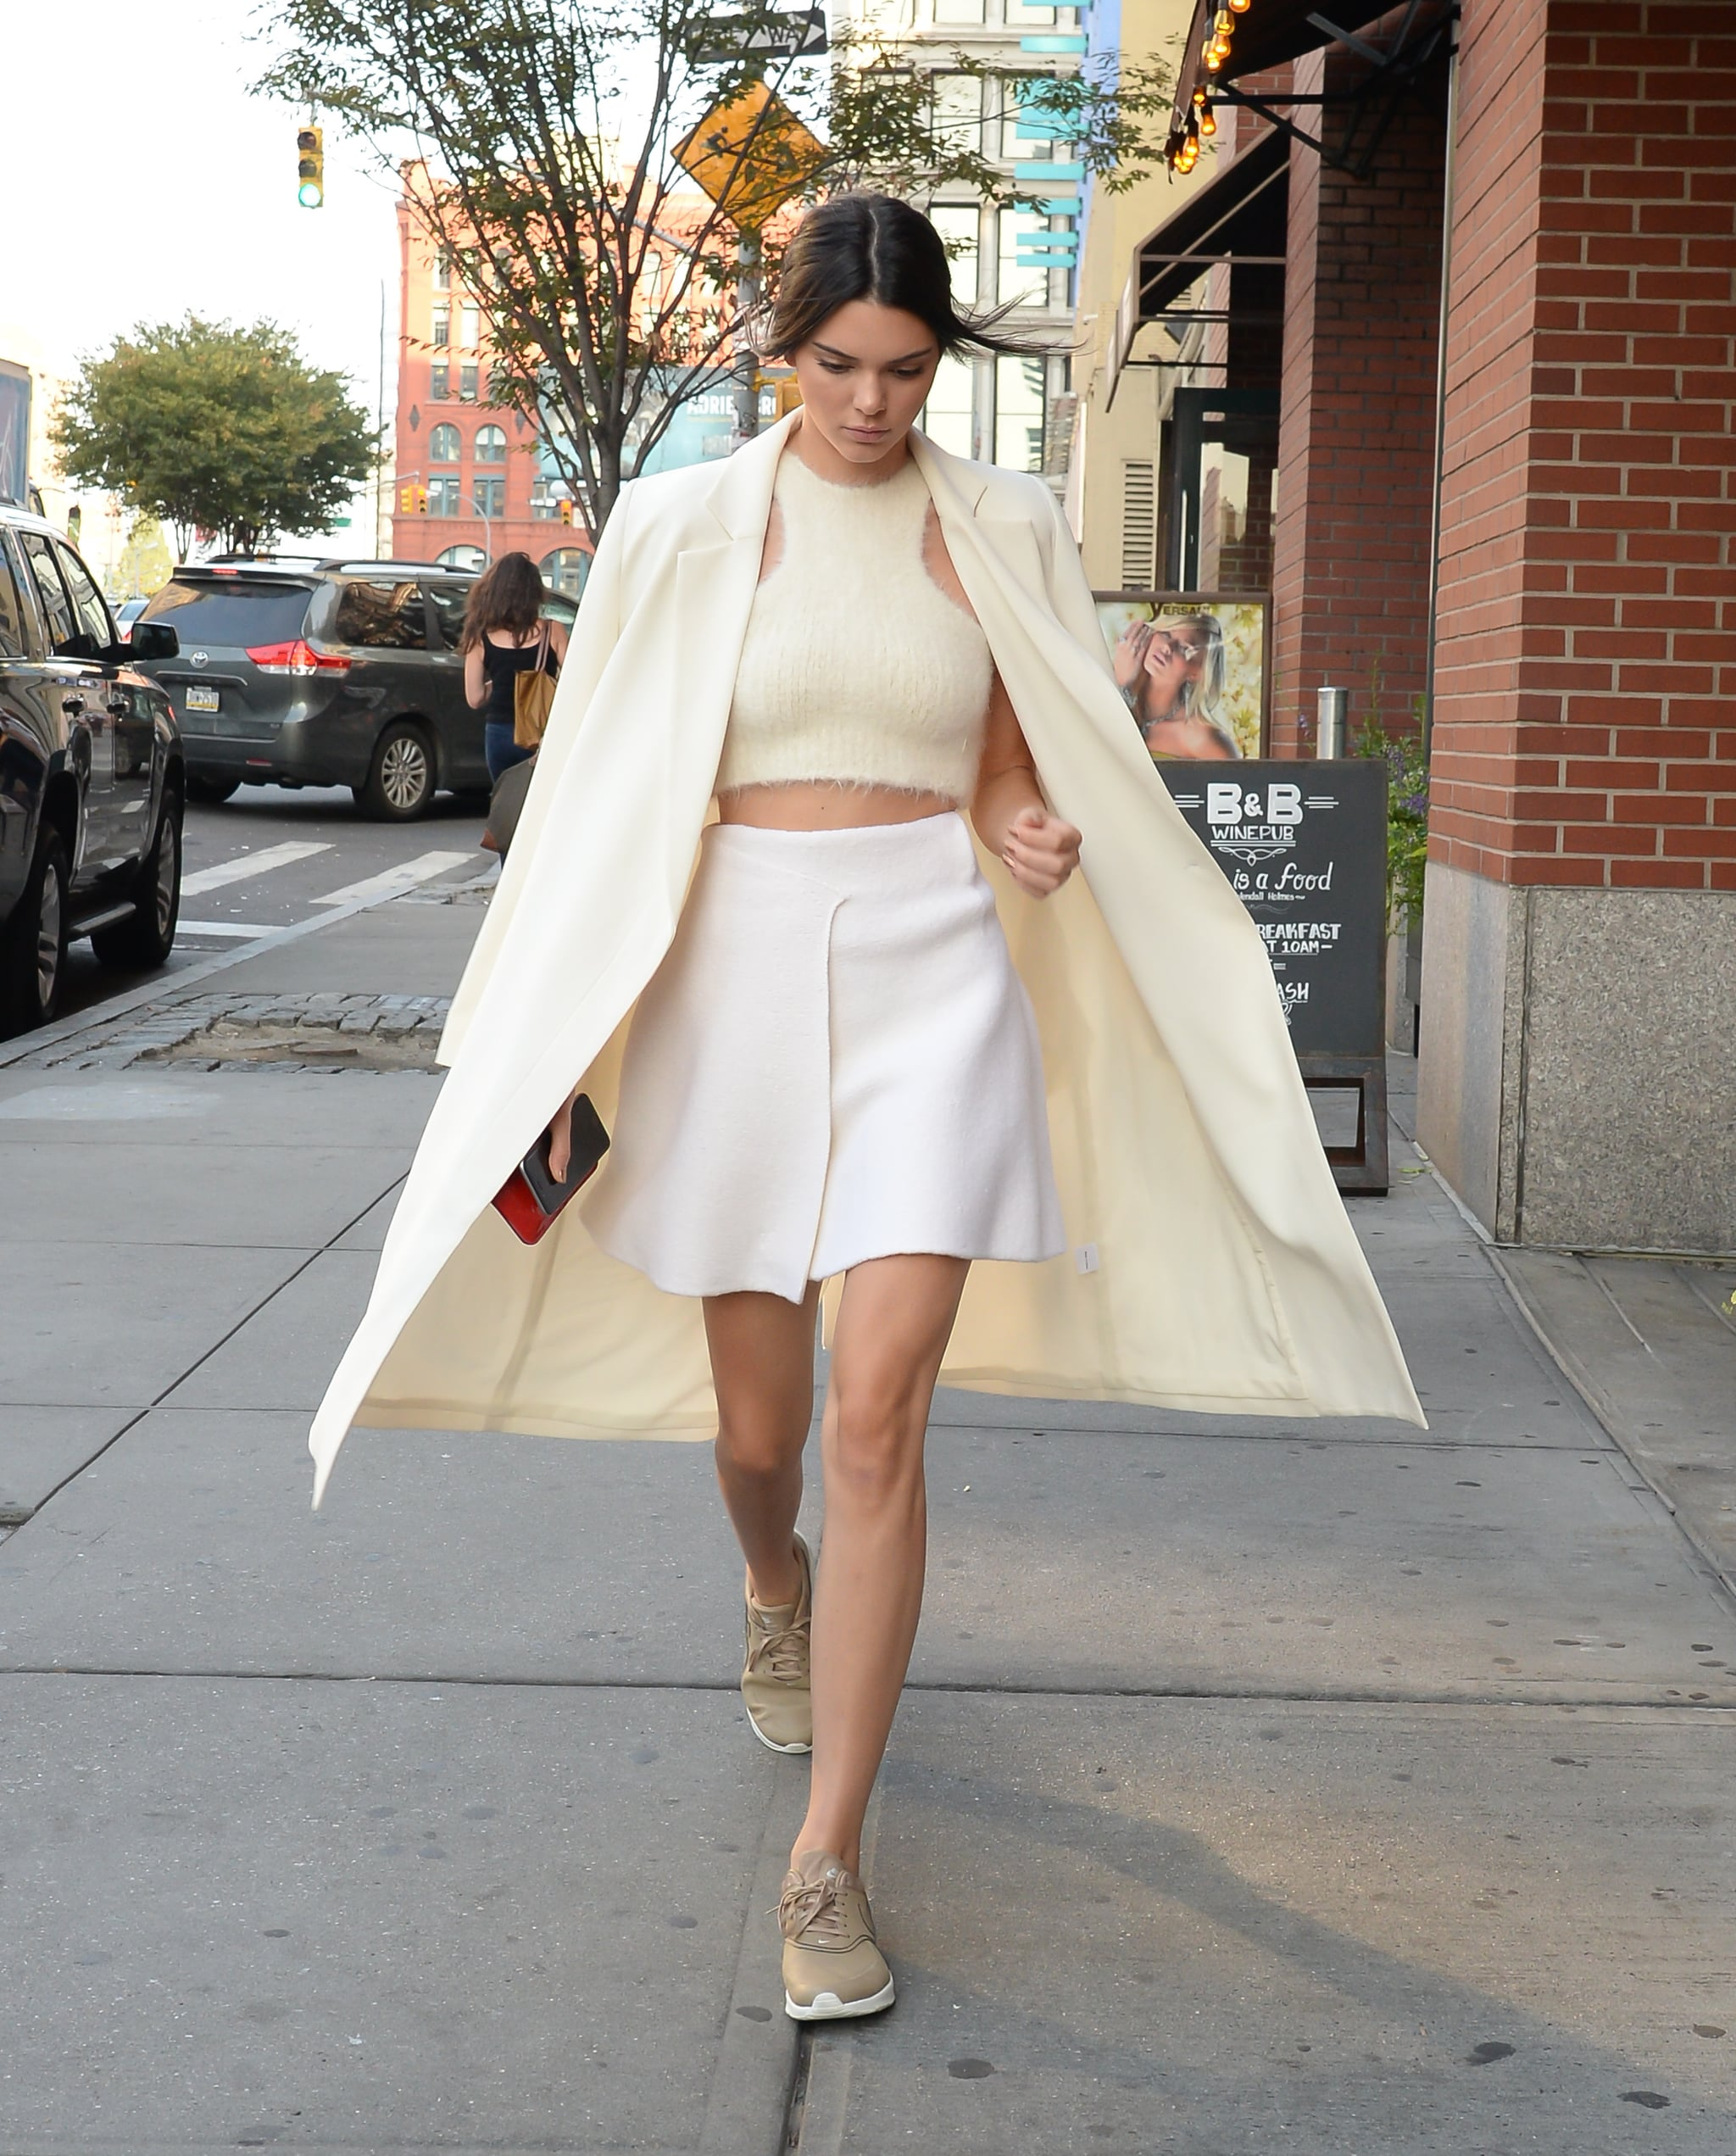 Kendall sneaker chic in an all white outfit of the day